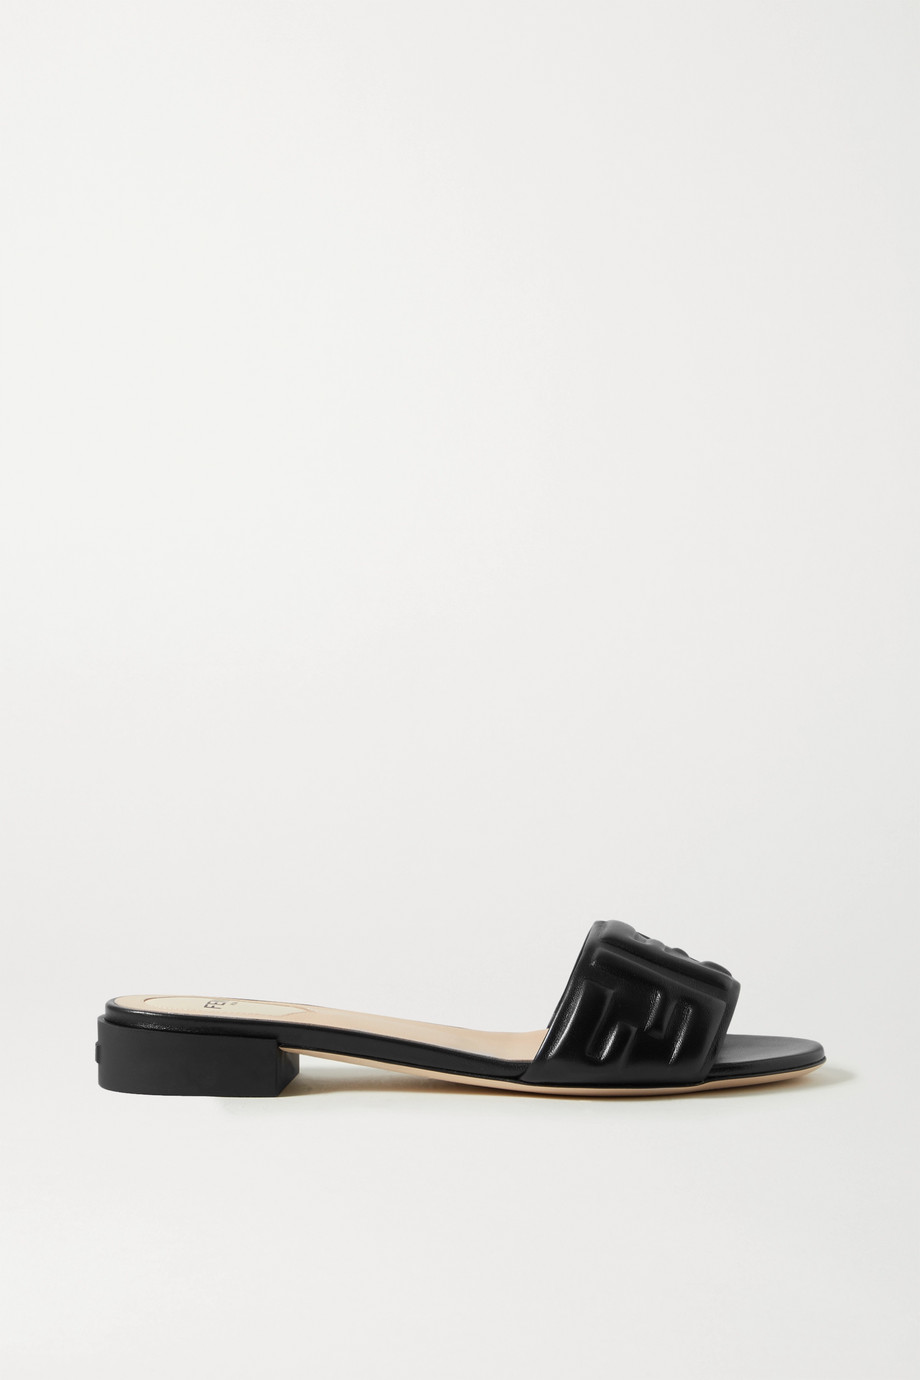 Fendi Logo-embossed leather sandals